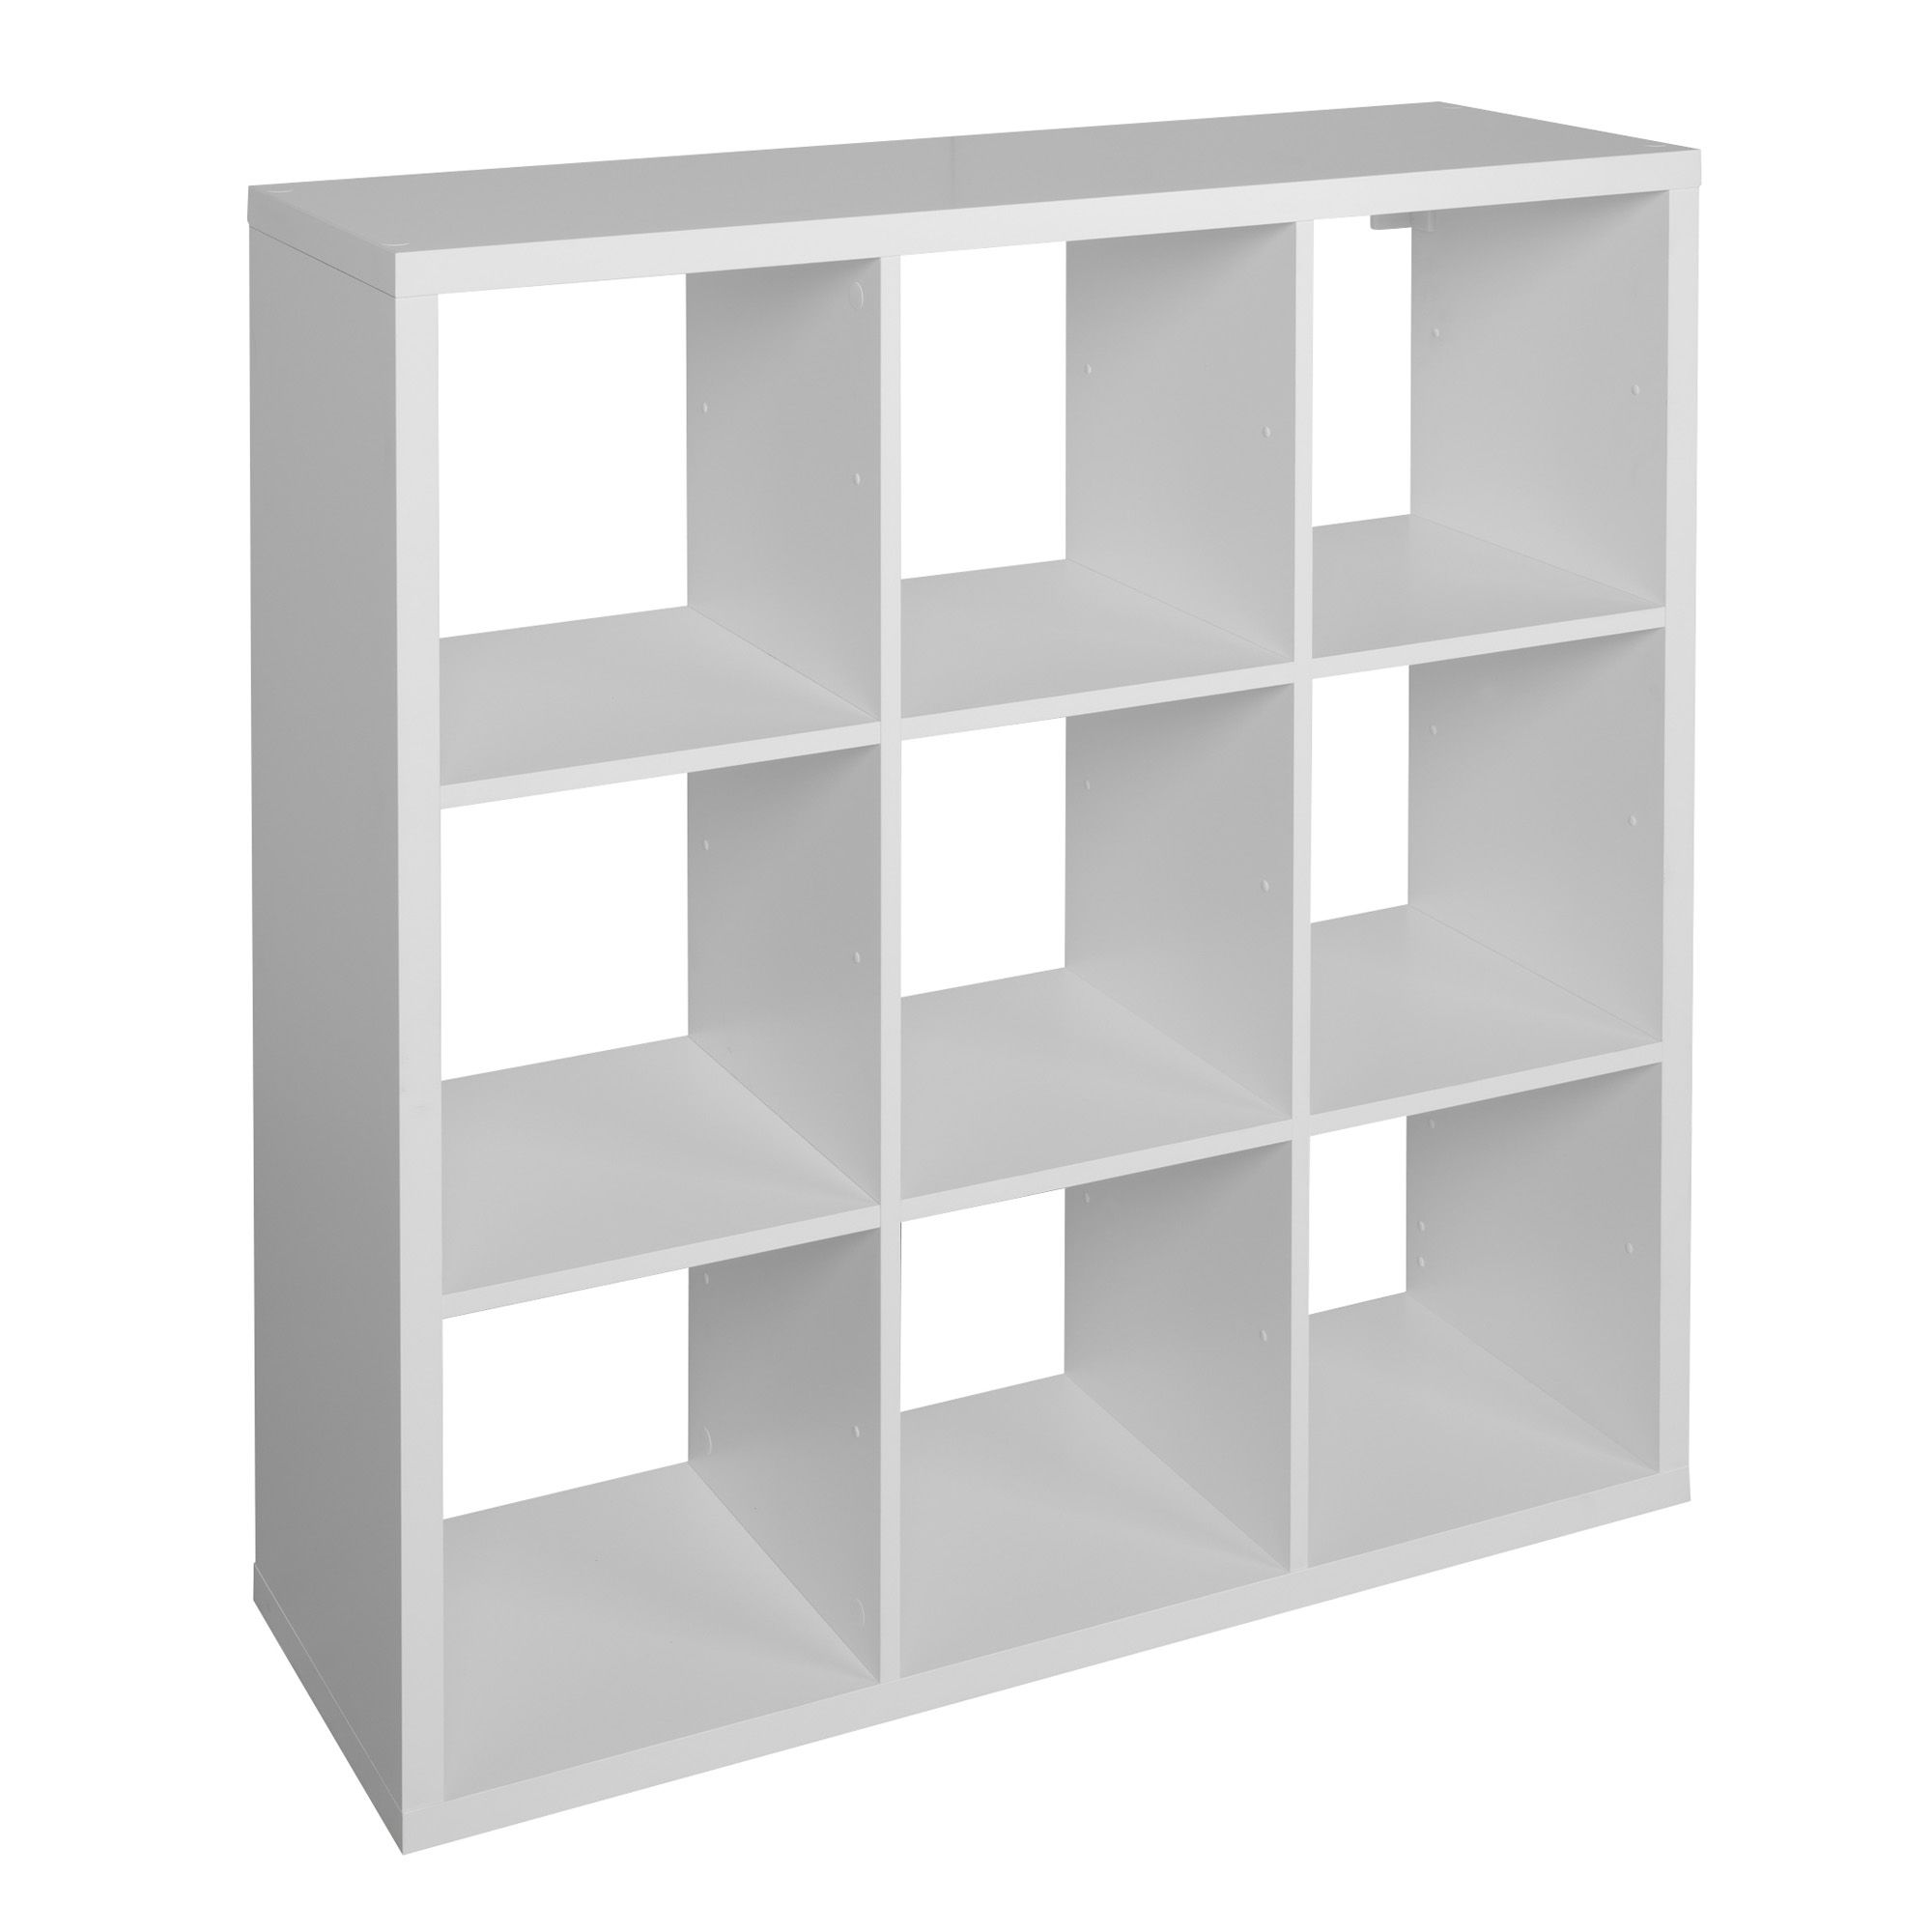 Form Mixxit White 9 Cube Shelving Unit (H)1080mm (W)1080mm | Departments | DIY at Bu0026Q  sc 1 st  Bu0026Q & Form Mixxit White 9 Cube Shelving Unit (H)1080mm (W)1080mm ...